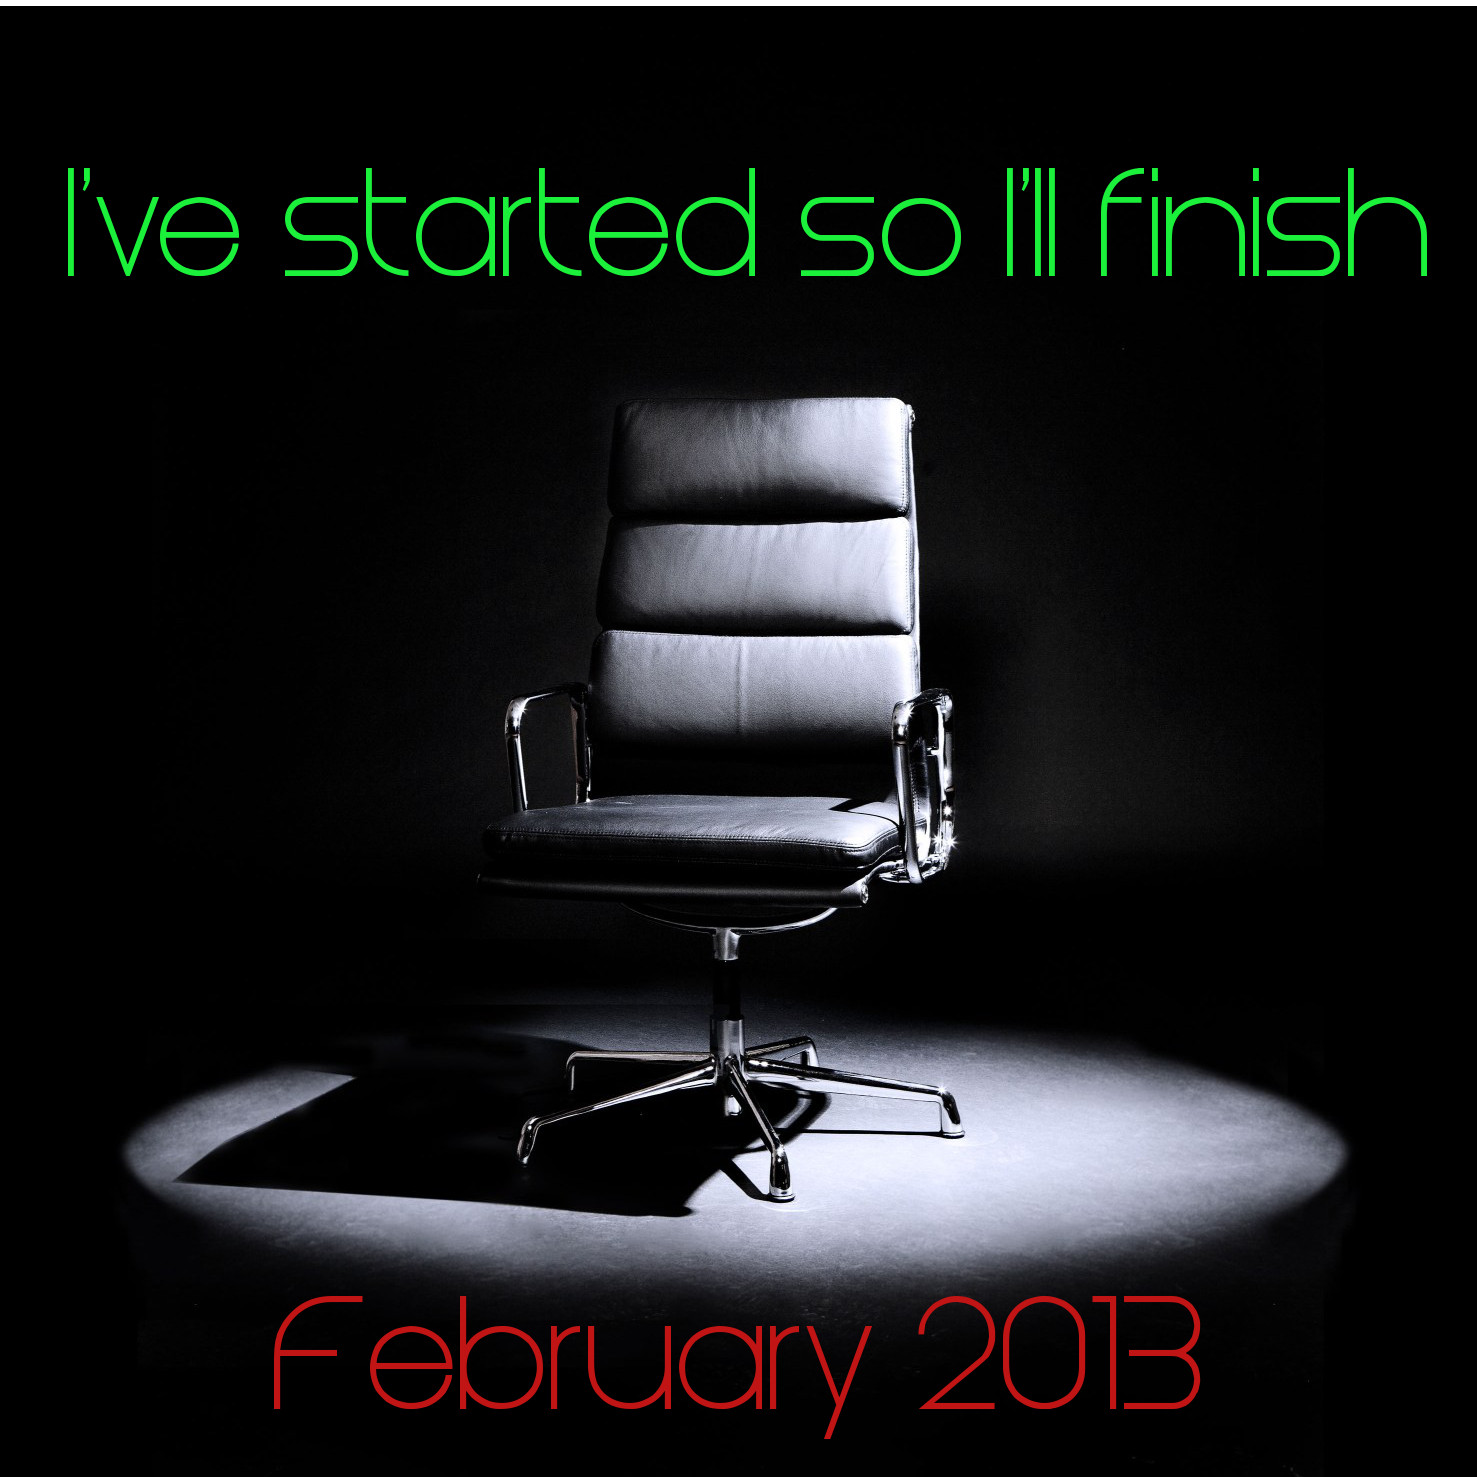 download ratio free: Paul Ross - I've started, so I'll finish - February 2014